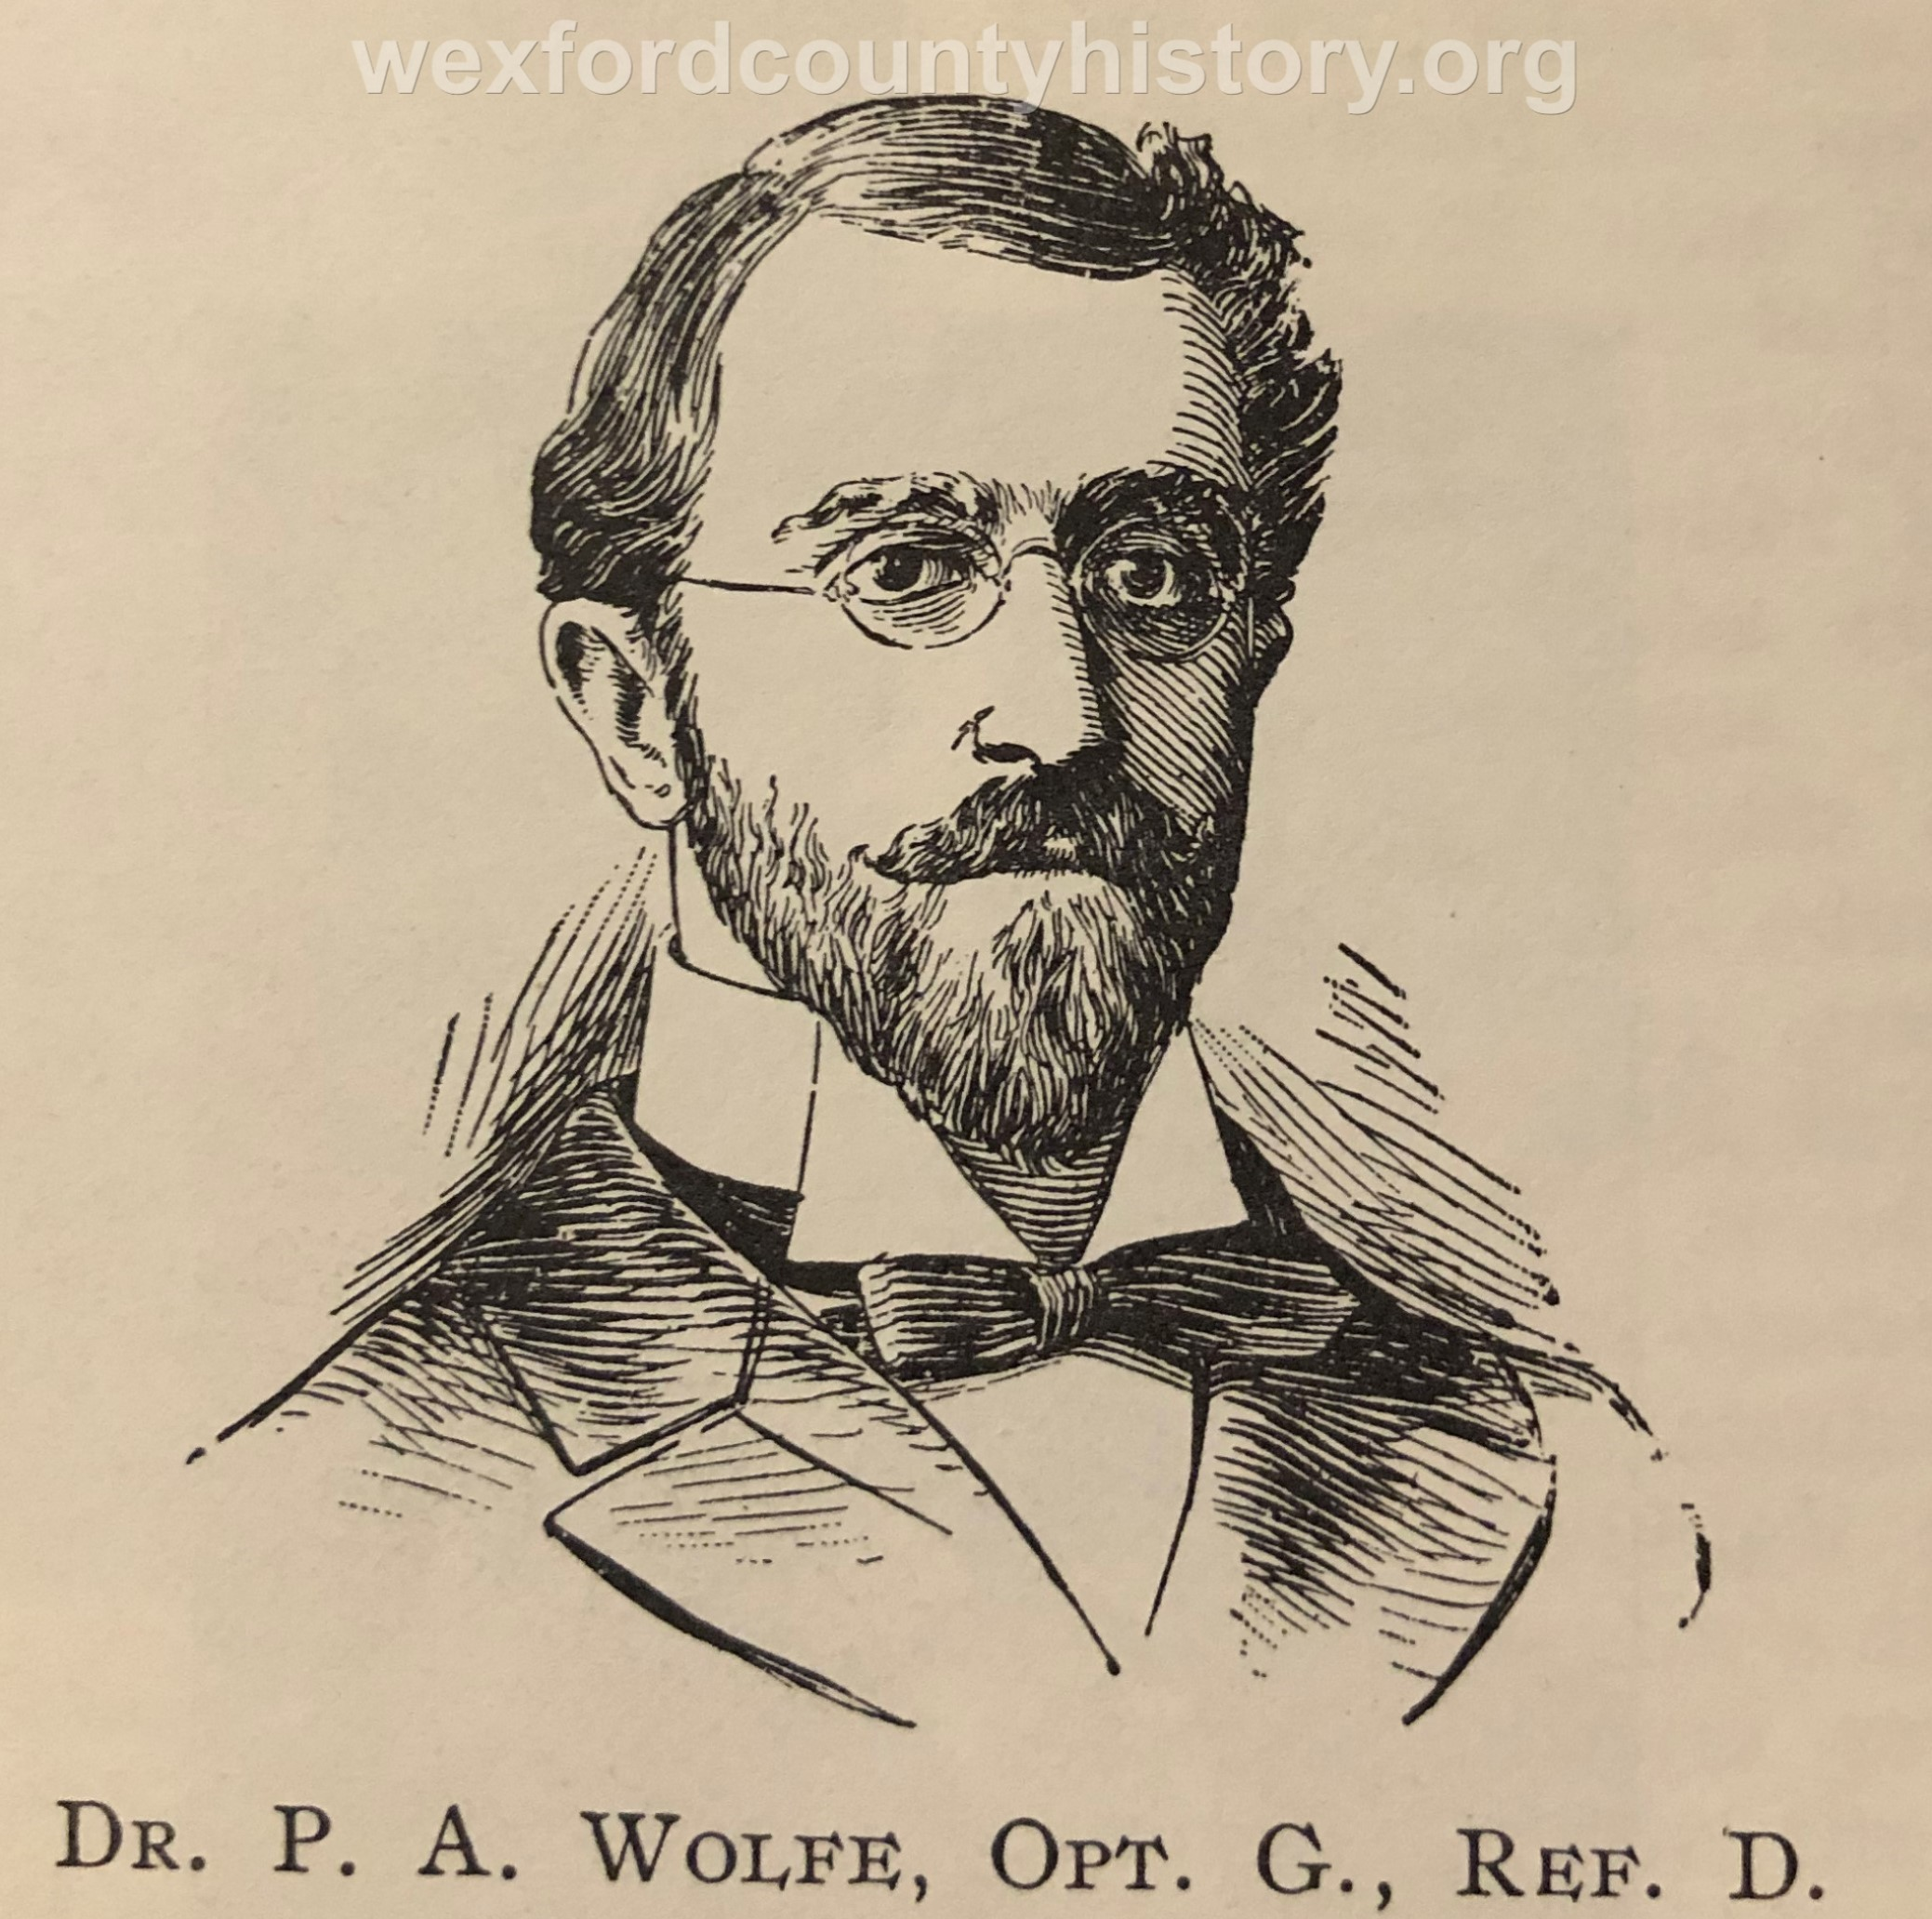 Dr. Wolfe